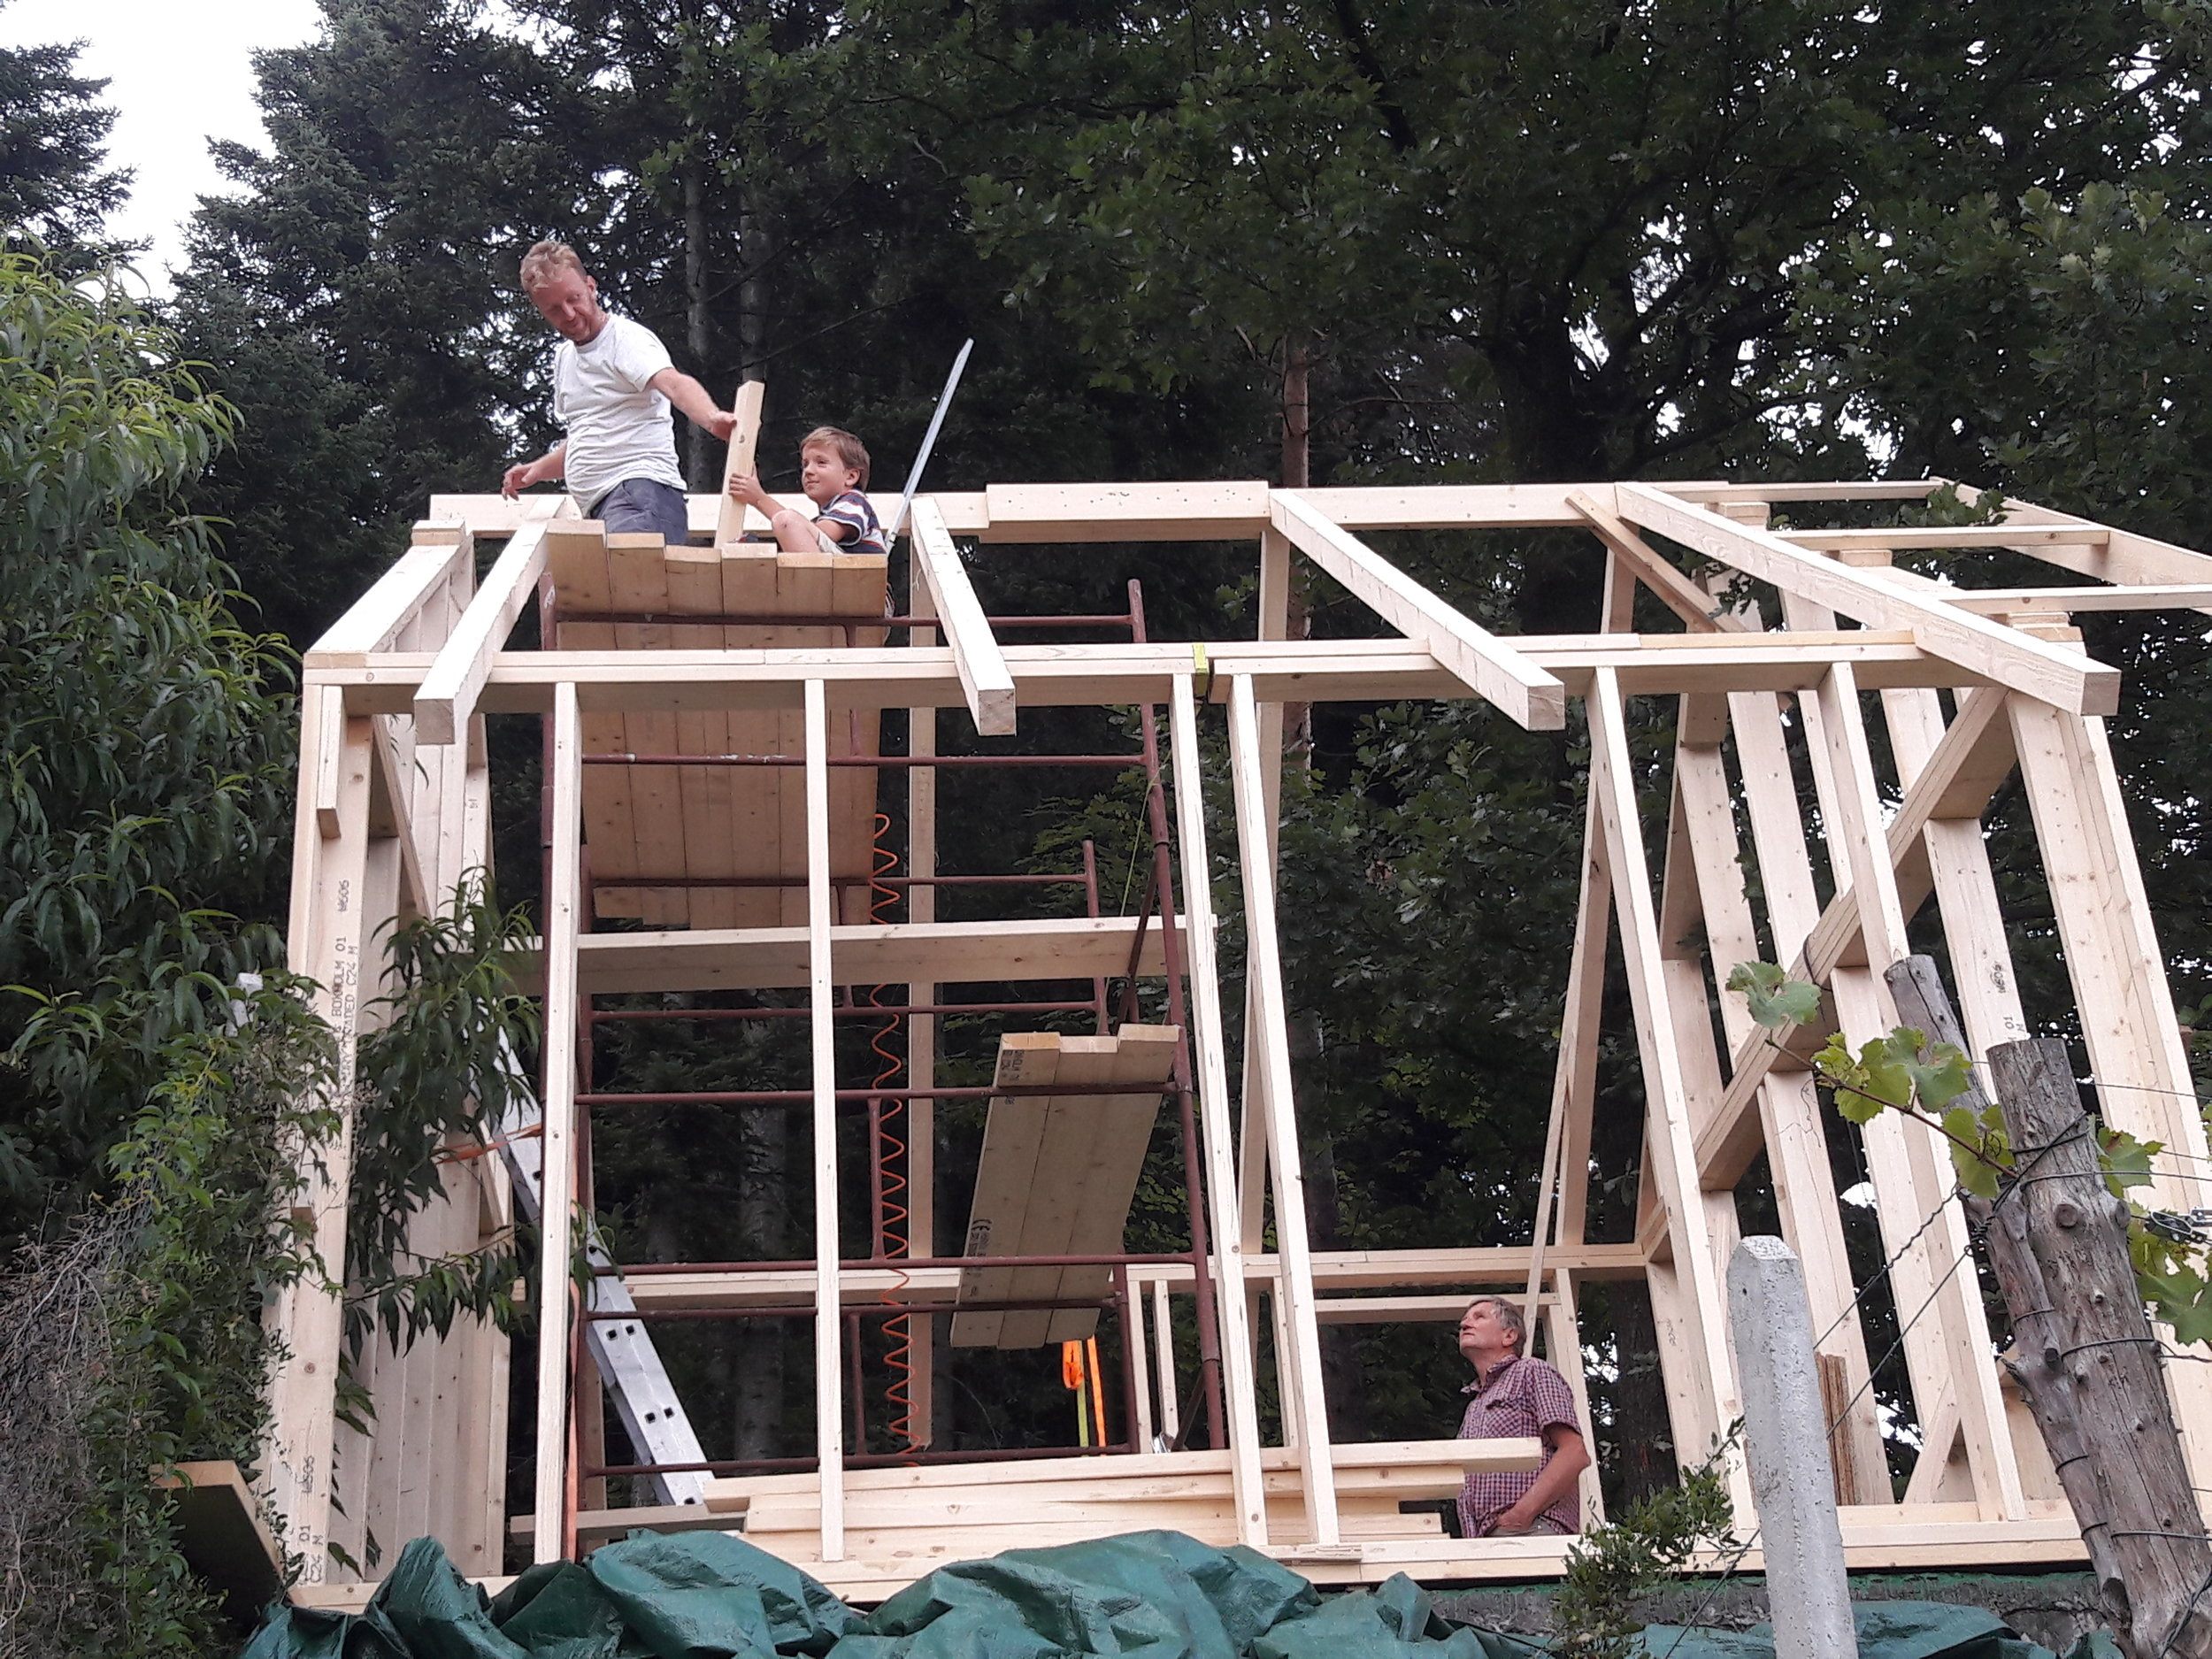 Michal building an apiary workshop with his father and son